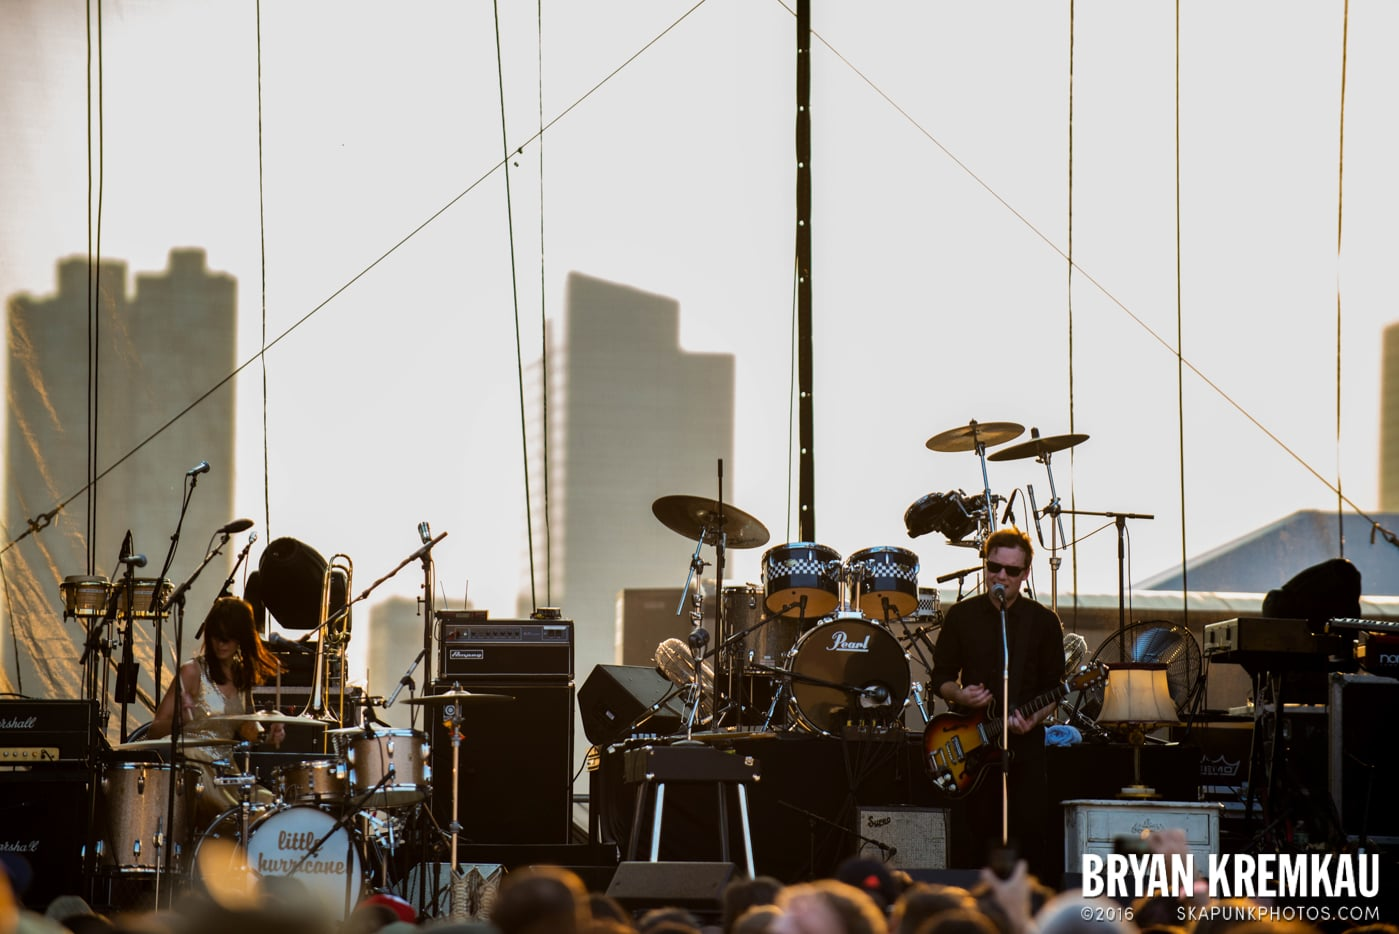 Little Hurricane @ Pier 26, Hudson River Park, NYC - July 17th 2013 - Bryan Kremkau (1)